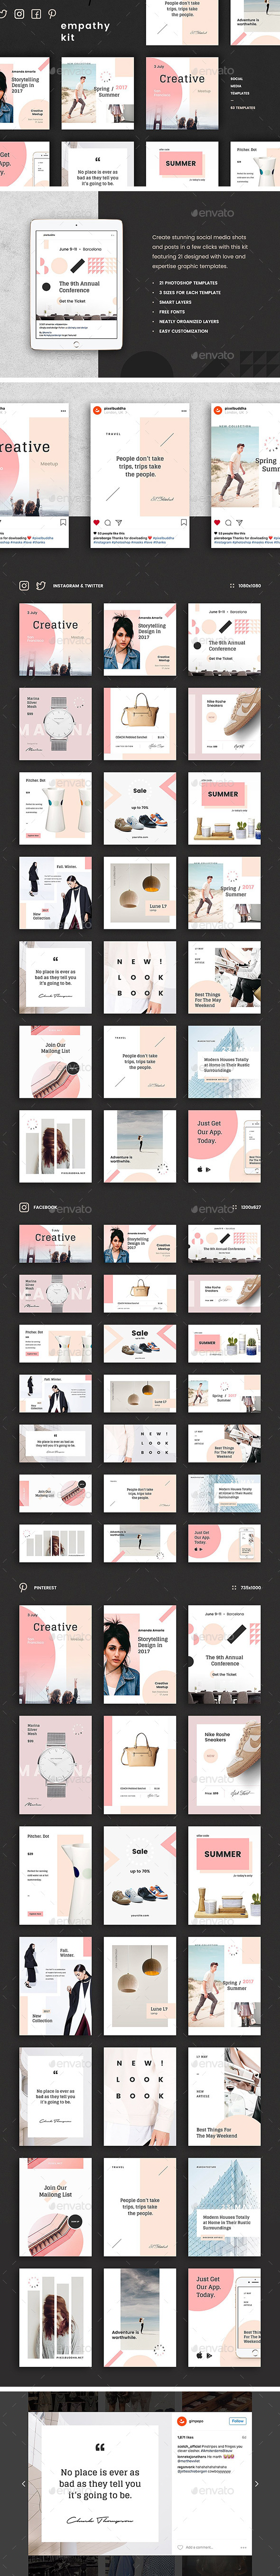 Empathy Social Media Kit: Instagram, Pinterest, Twitter & Facebook Templates - Social Media Web Elements